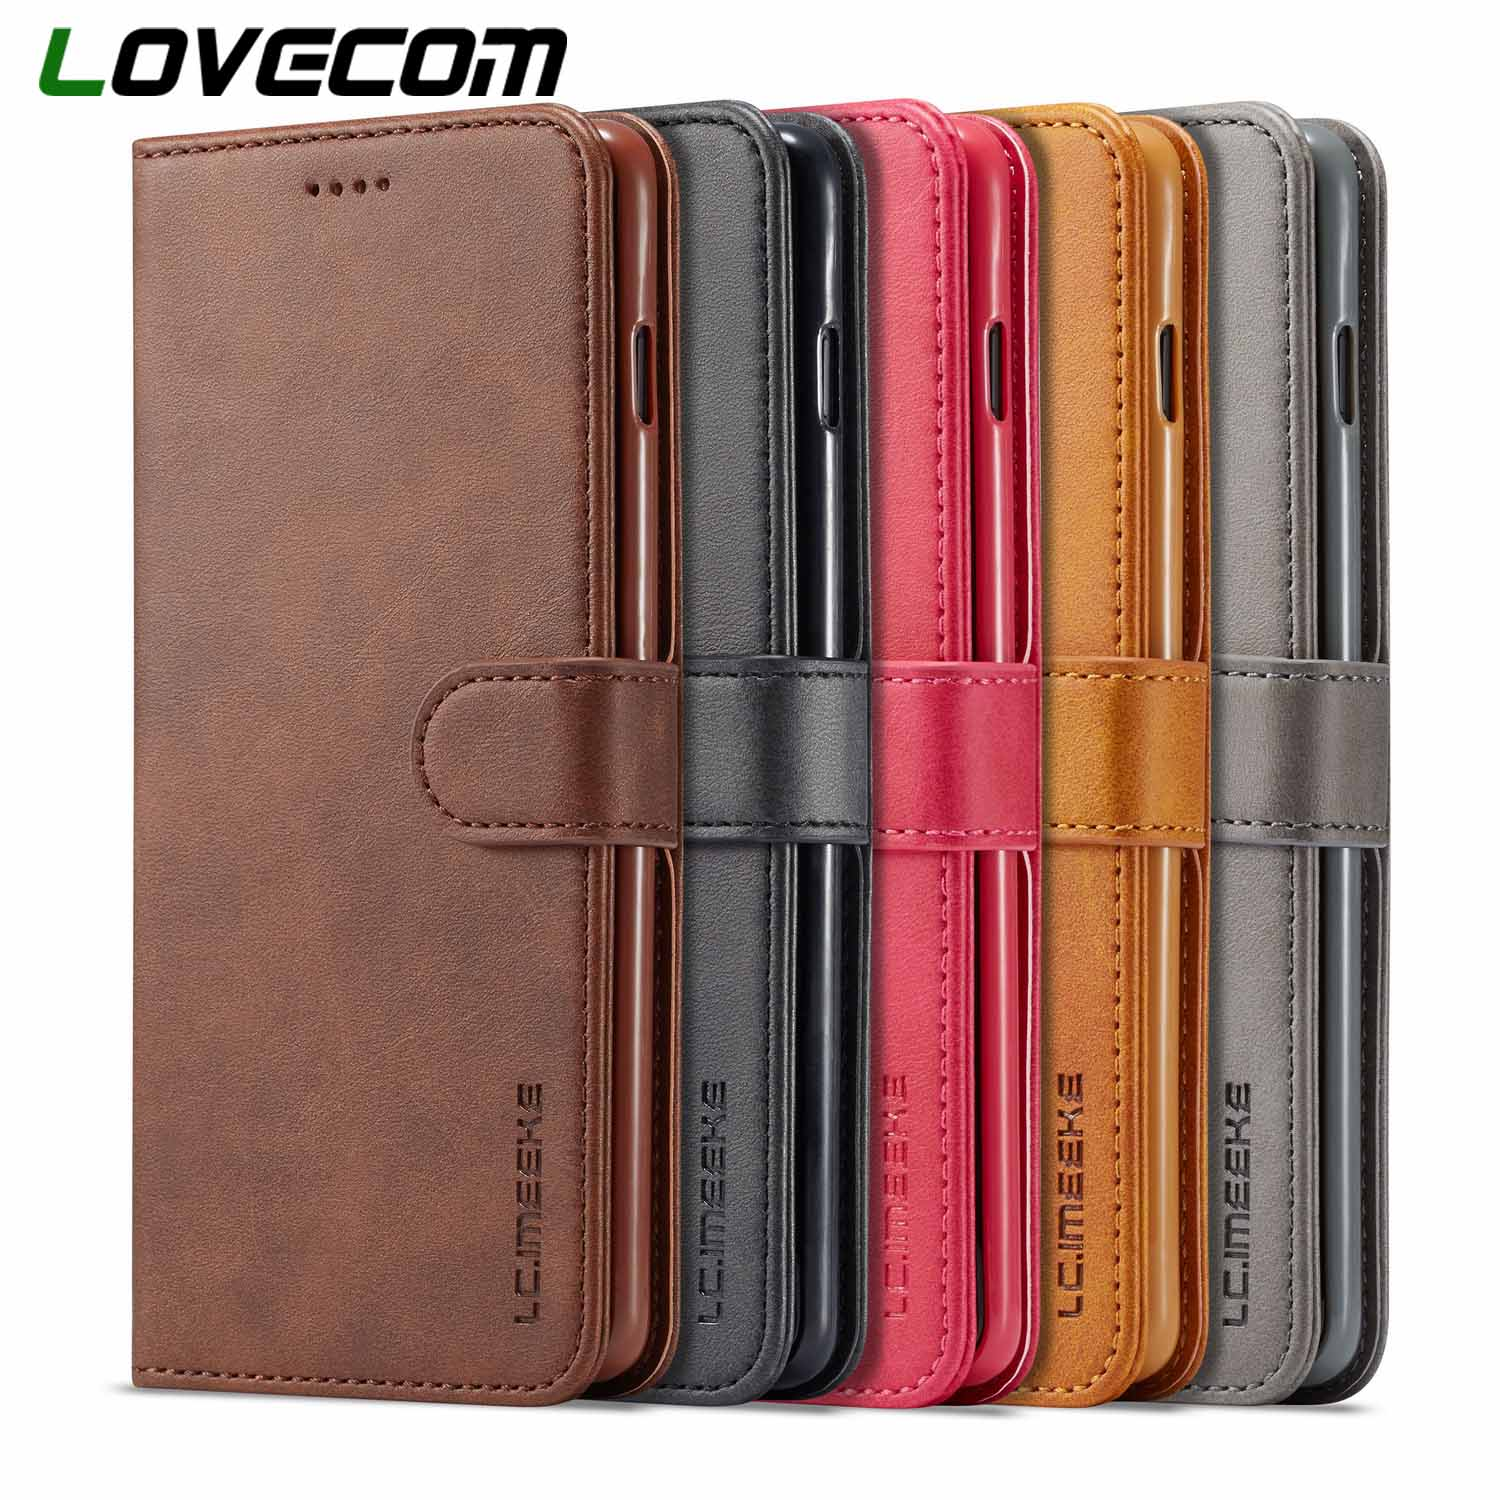 LOVECOM Vintage Leather Wallet <font><b>Flip</b></font> Phone <font><b>Cases</b></font> For Samsung Galaxy A10 A20 A40 A50 A60 M30 S10 Plus S10e S9 <font><b>Note</b></font> 8 <font><b>9</b></font> Back Cover image